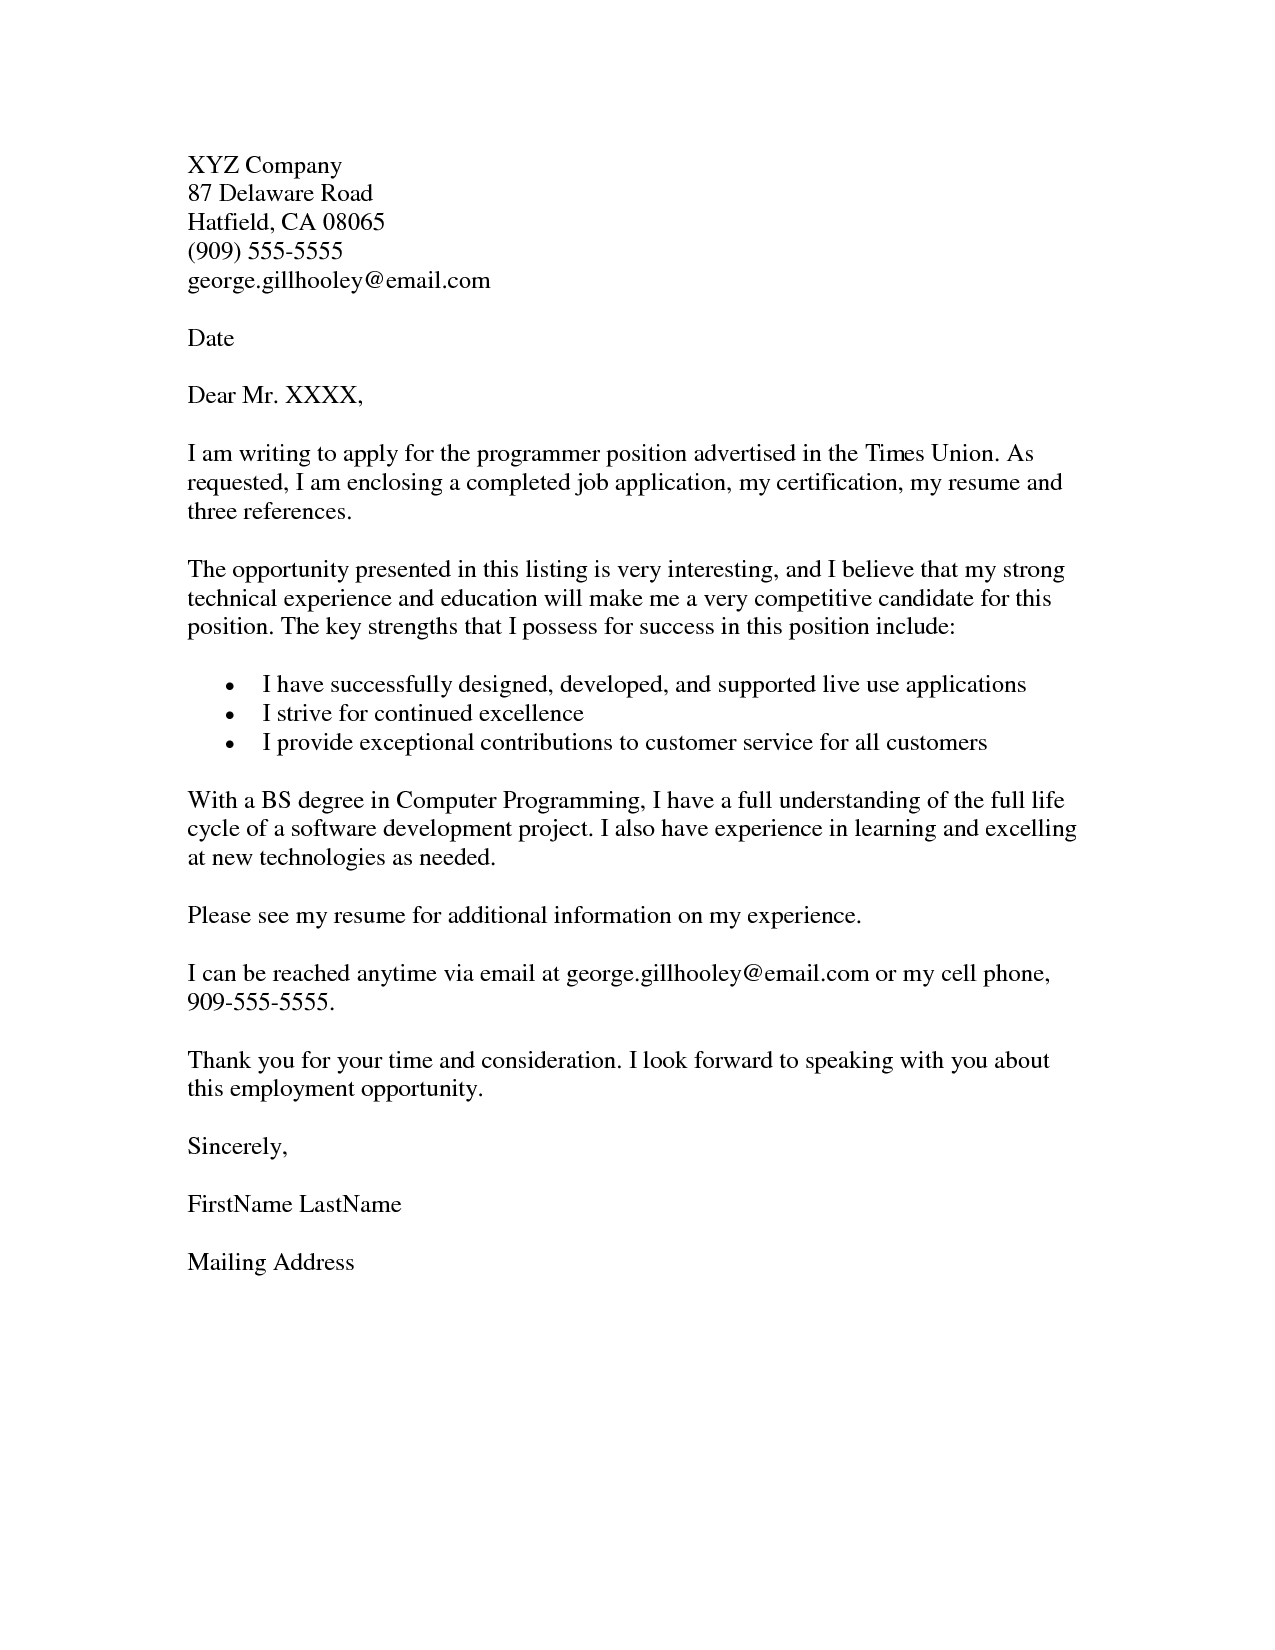 Cover letter sample cover letter for job application in for What is a covering letter when applying for a job